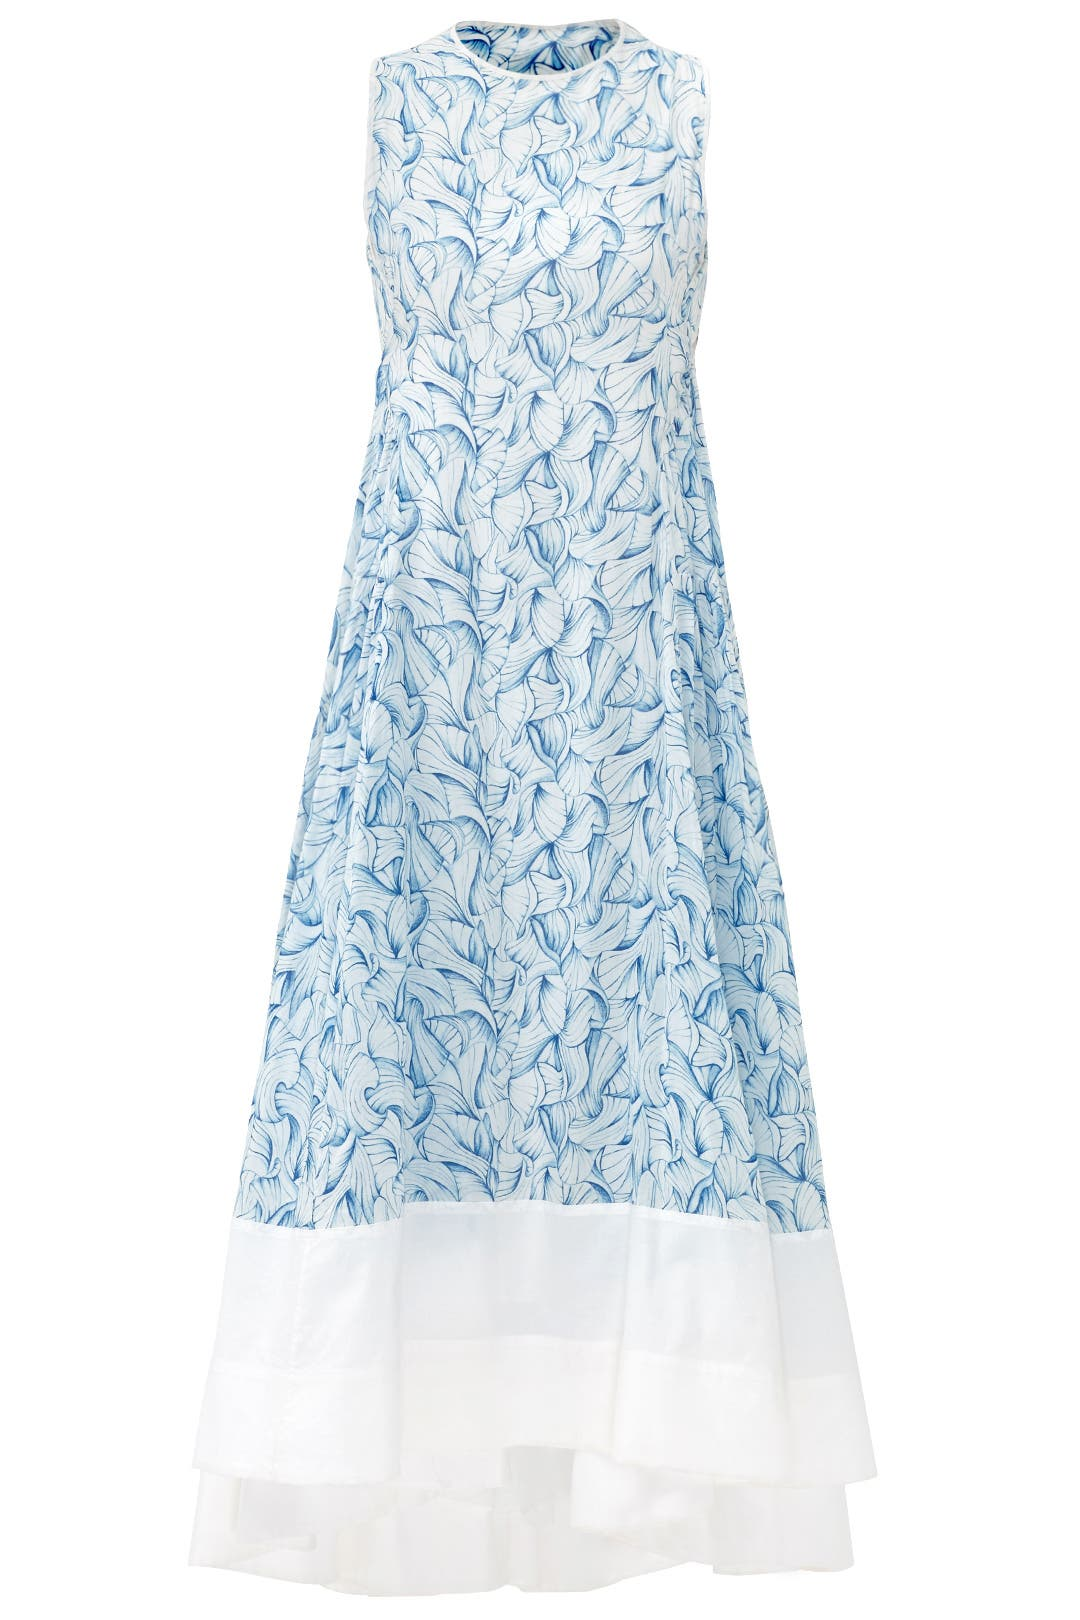 Dress for Women, Evening Cocktail Party On Sale, Blue, Cotton, 2017, 10 Tory Burch